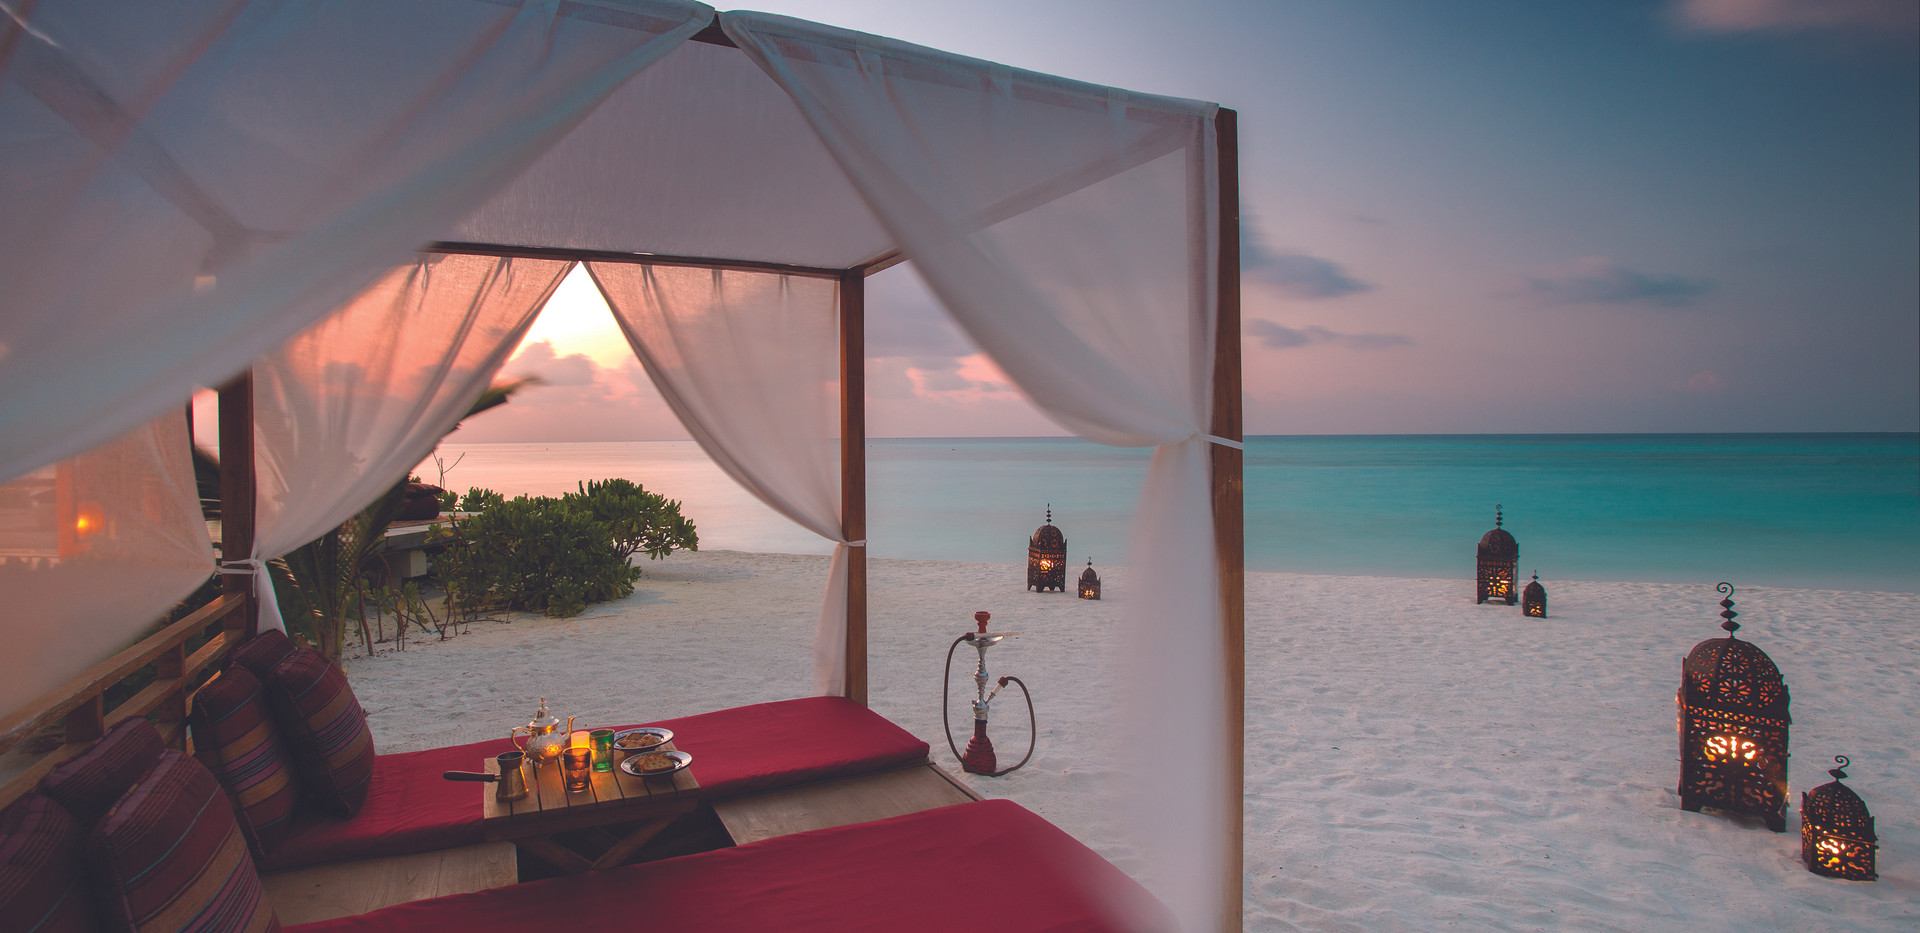 BEACH FRONT CABANAS AT SUNSET - ATMOSPHE